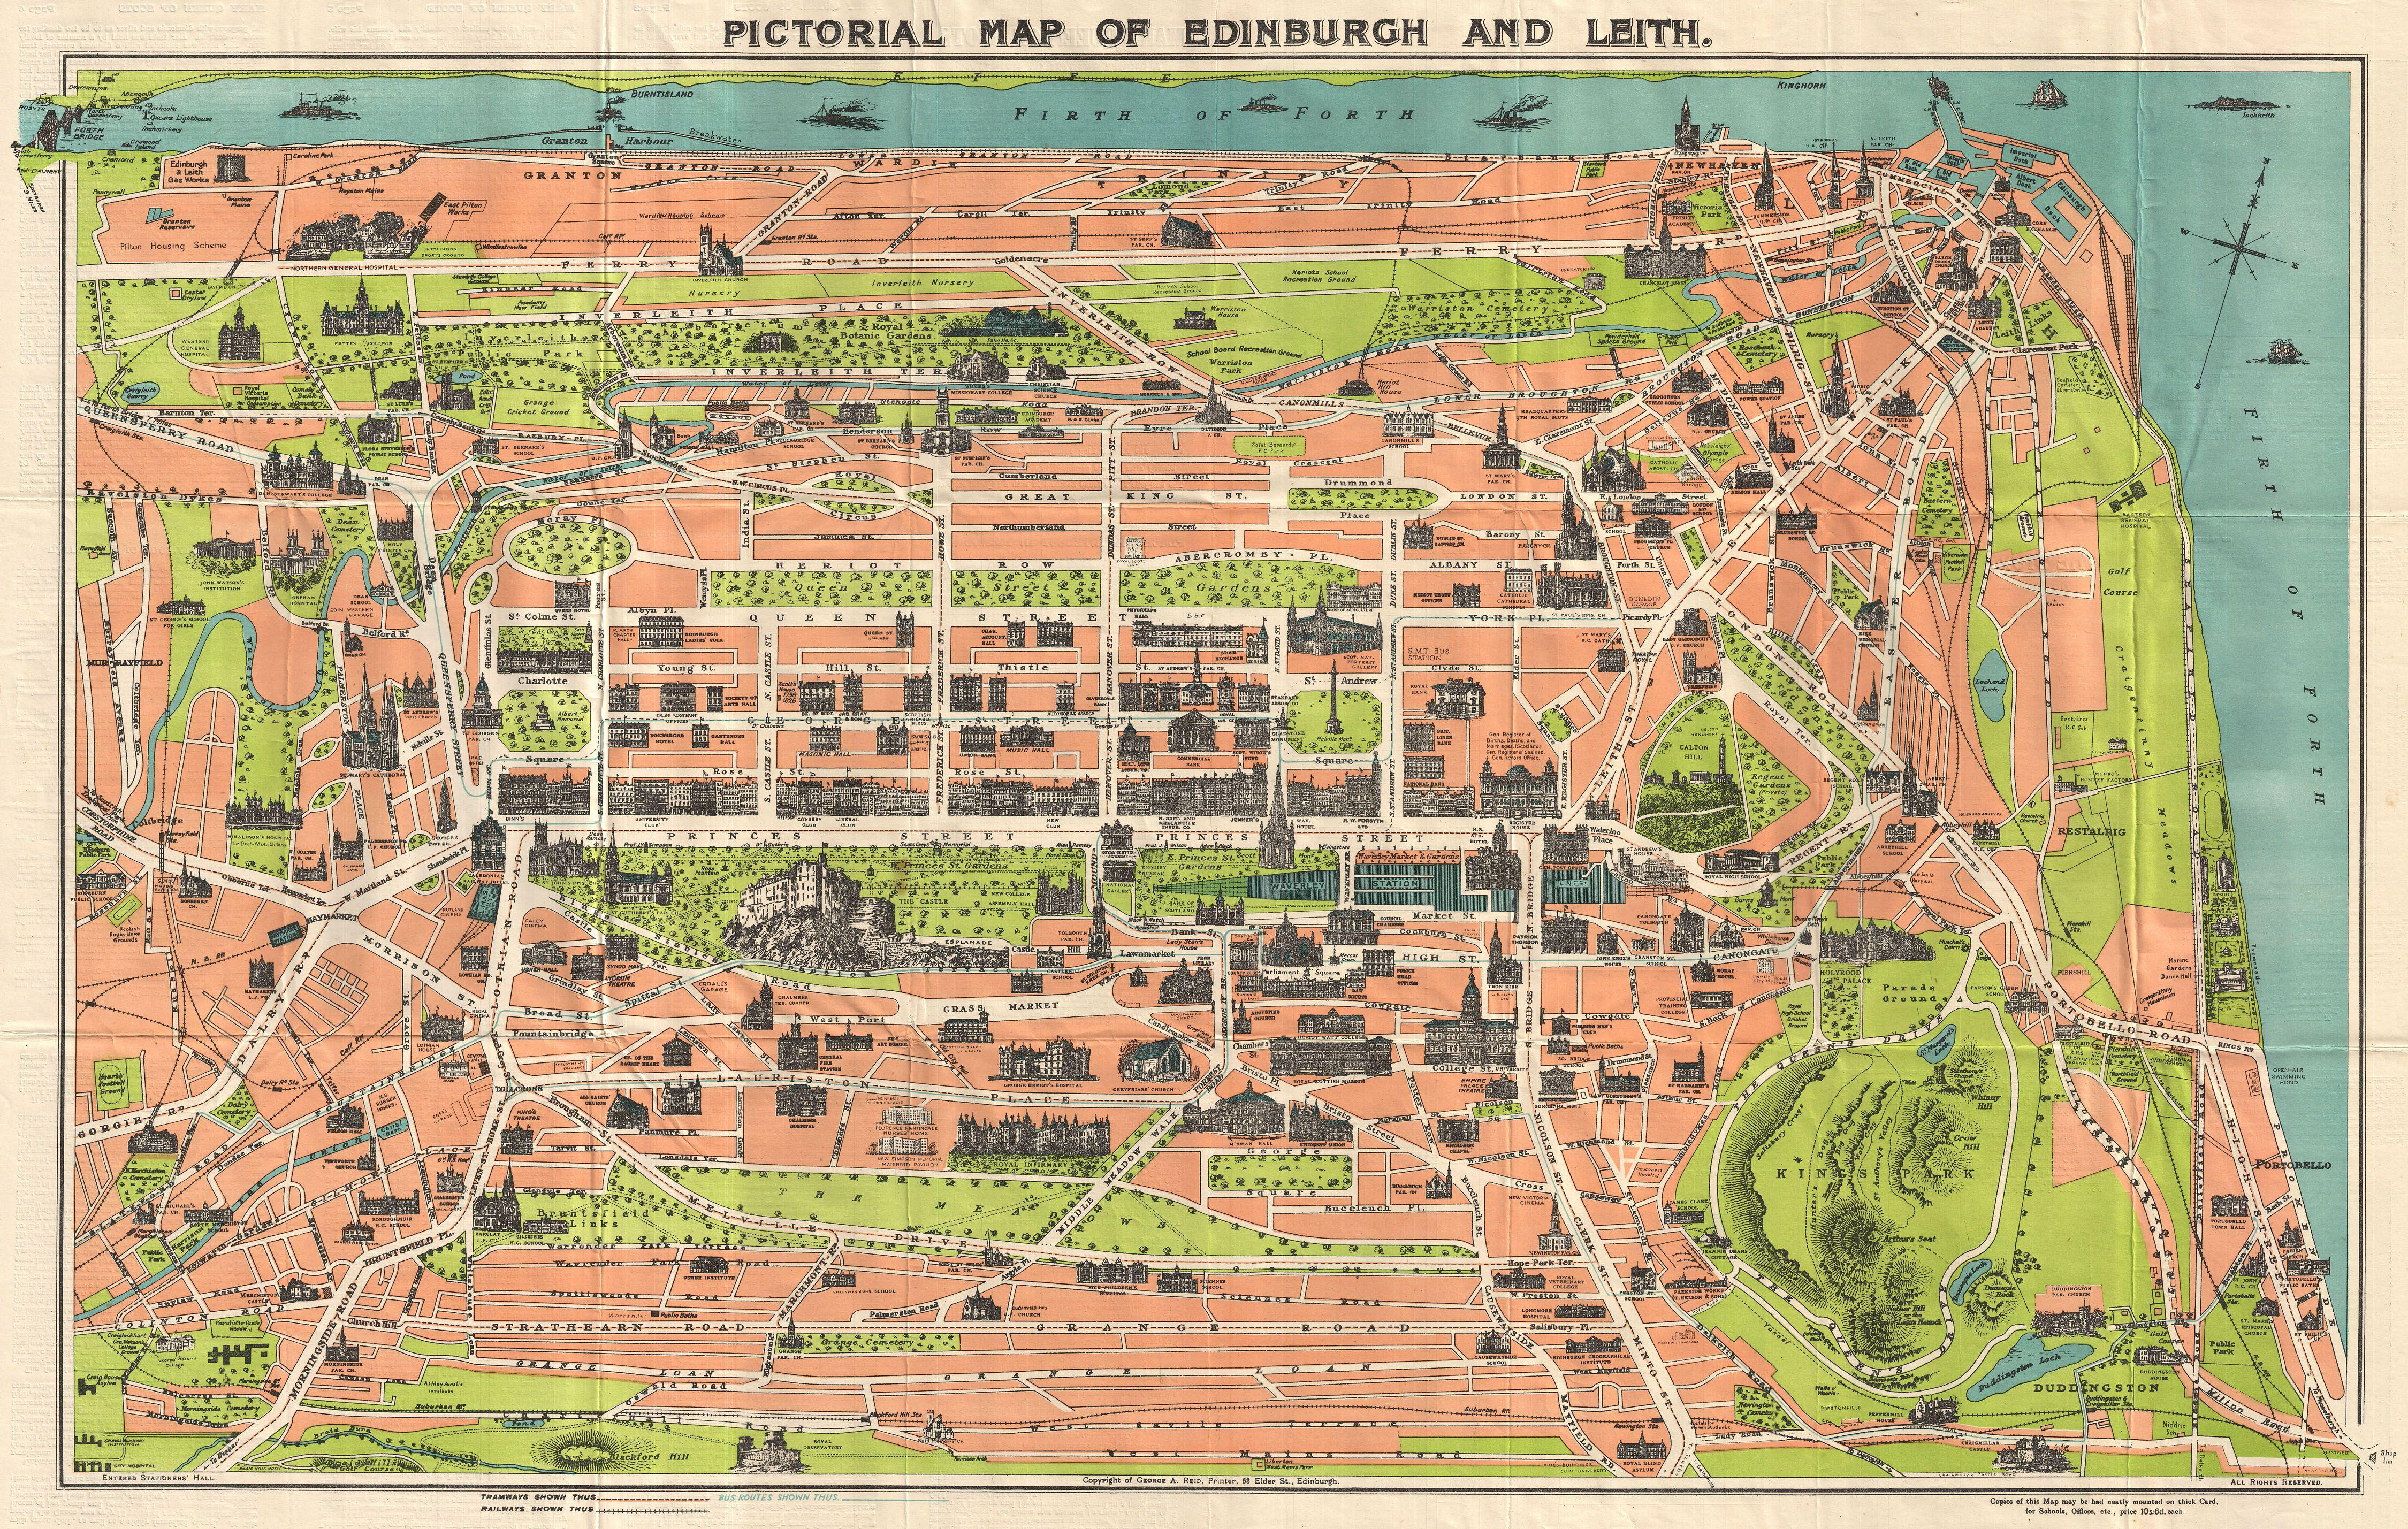 File:1935 Reid Pictorial Map of Edinburgh and Leith ...